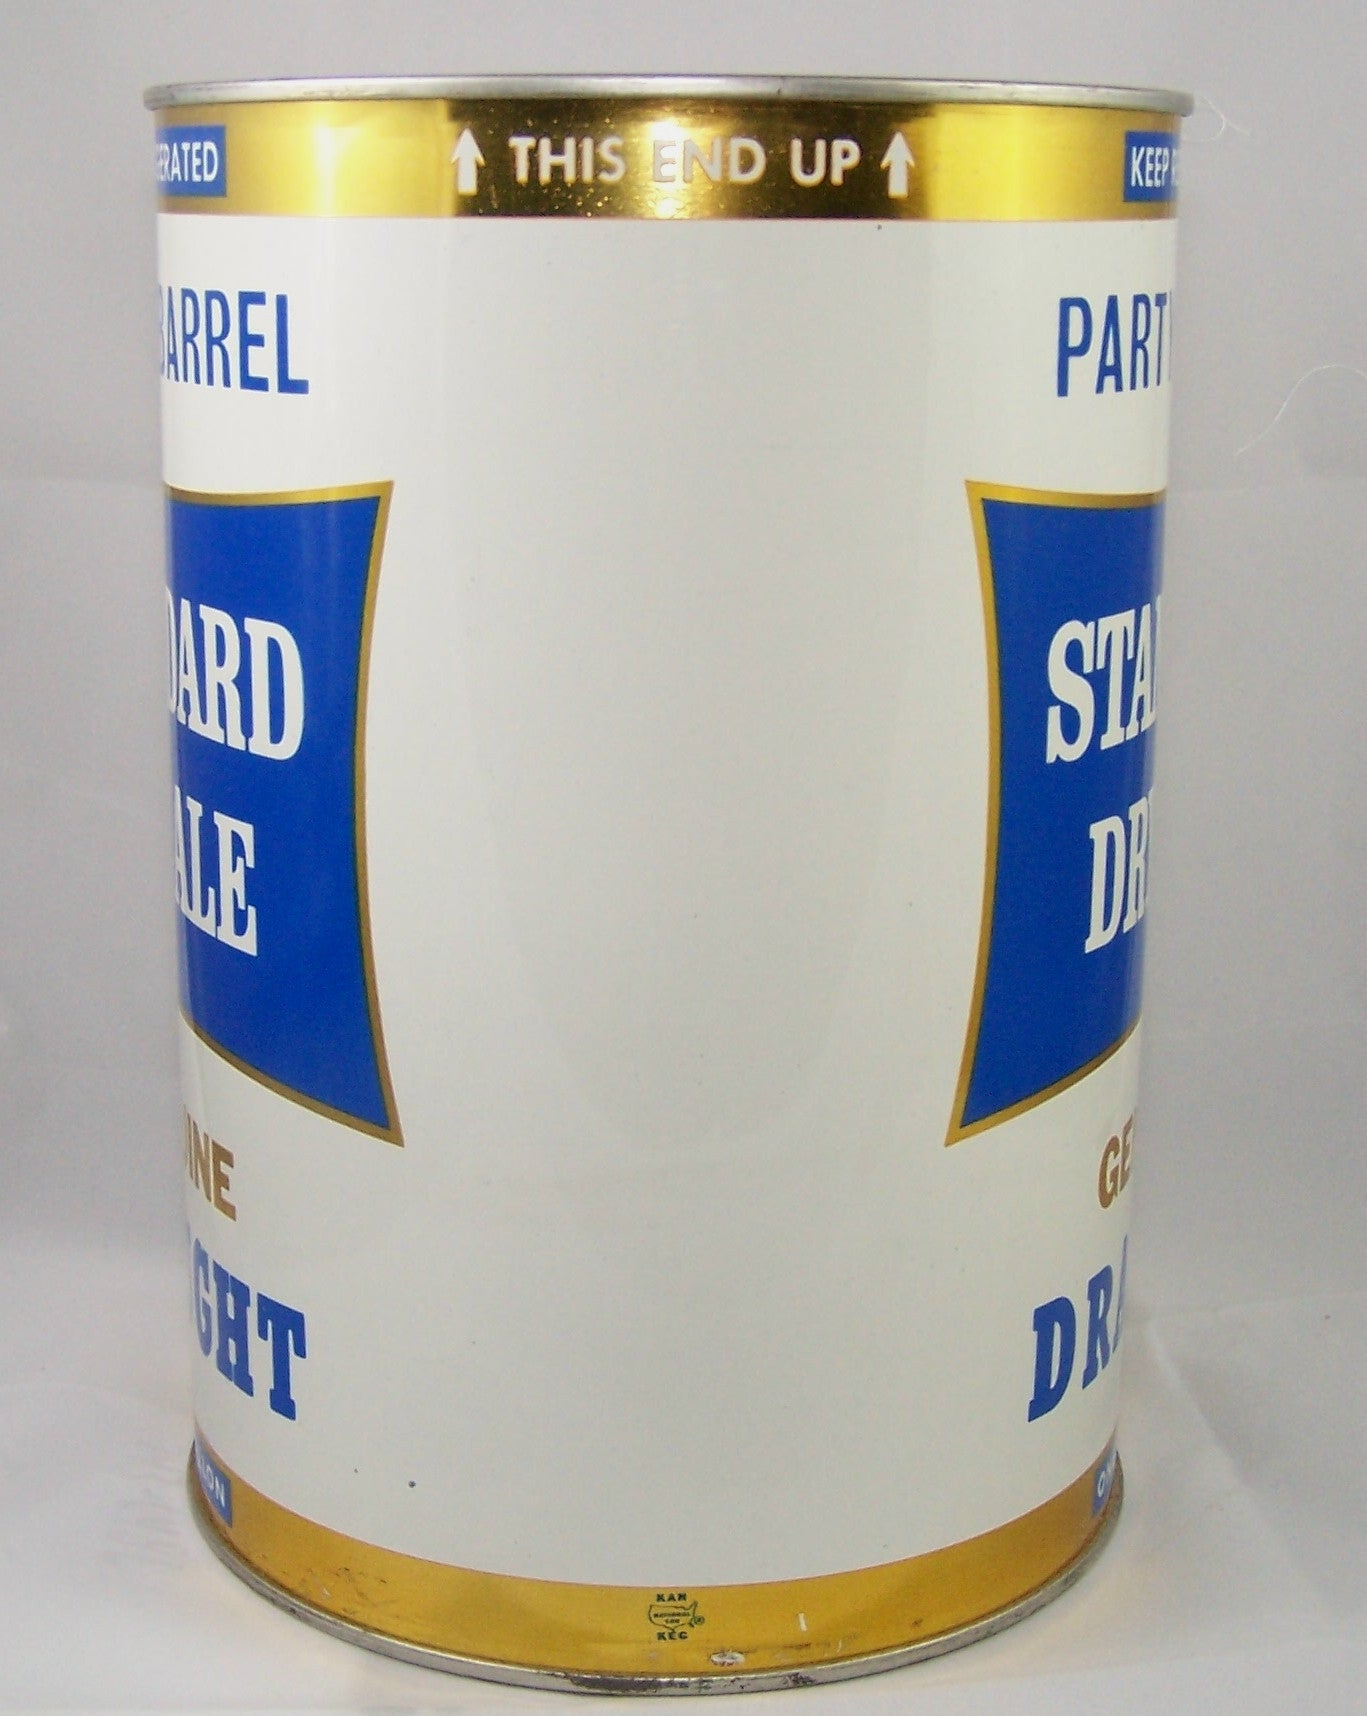 Standard Dry Ale (Party Barrel) USBC 246-7, Grade A1+